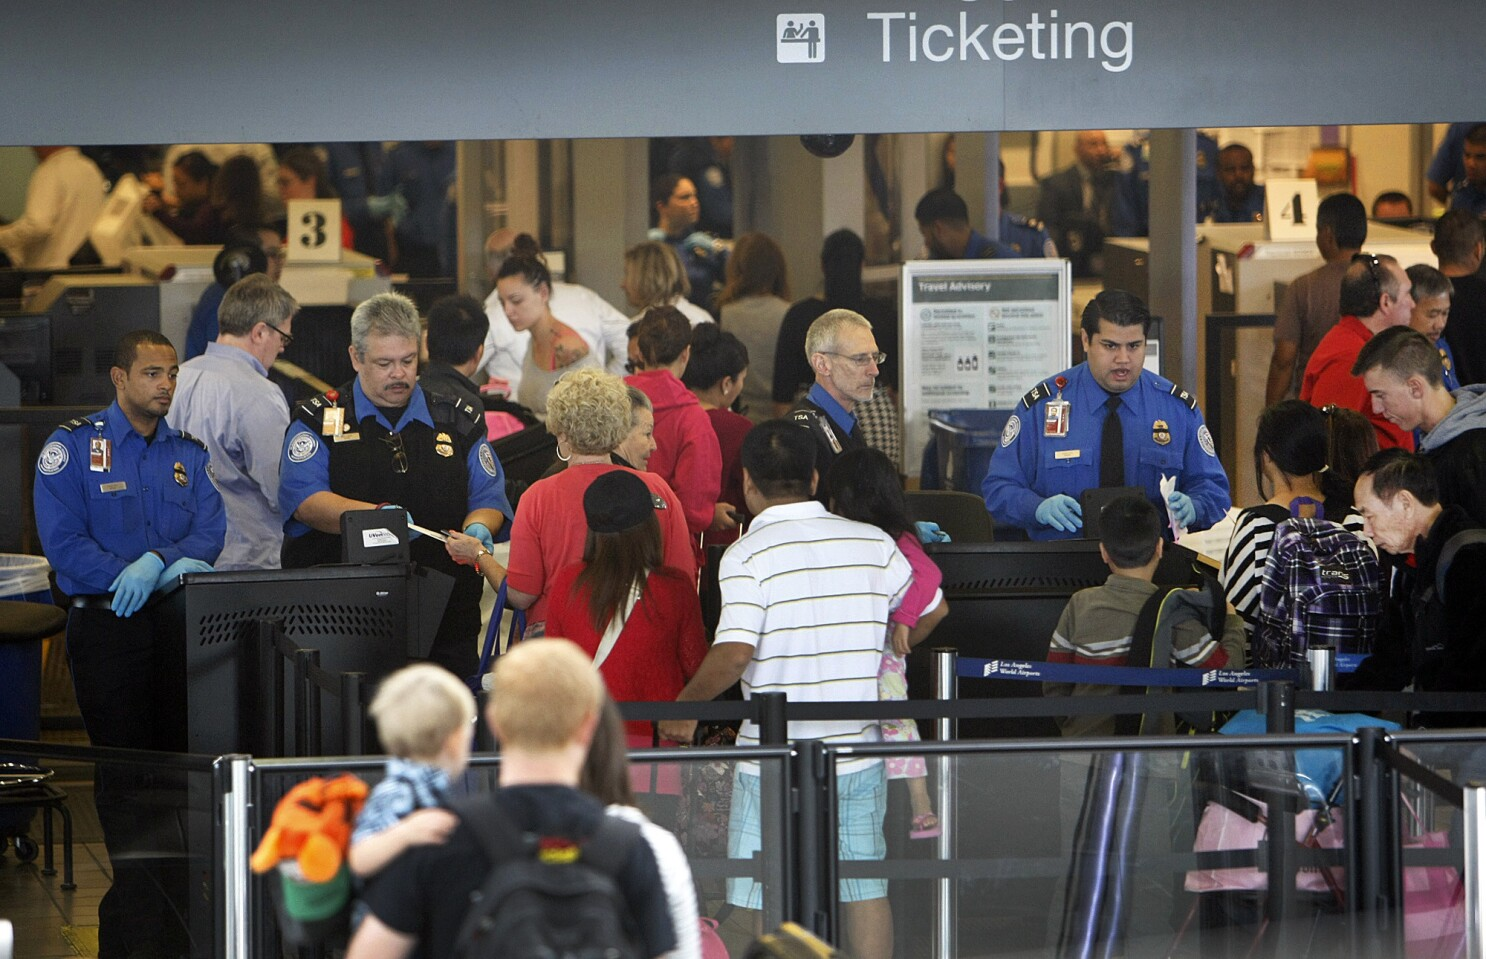 More people are flying but TSA lines at LAX are shorter. Why?